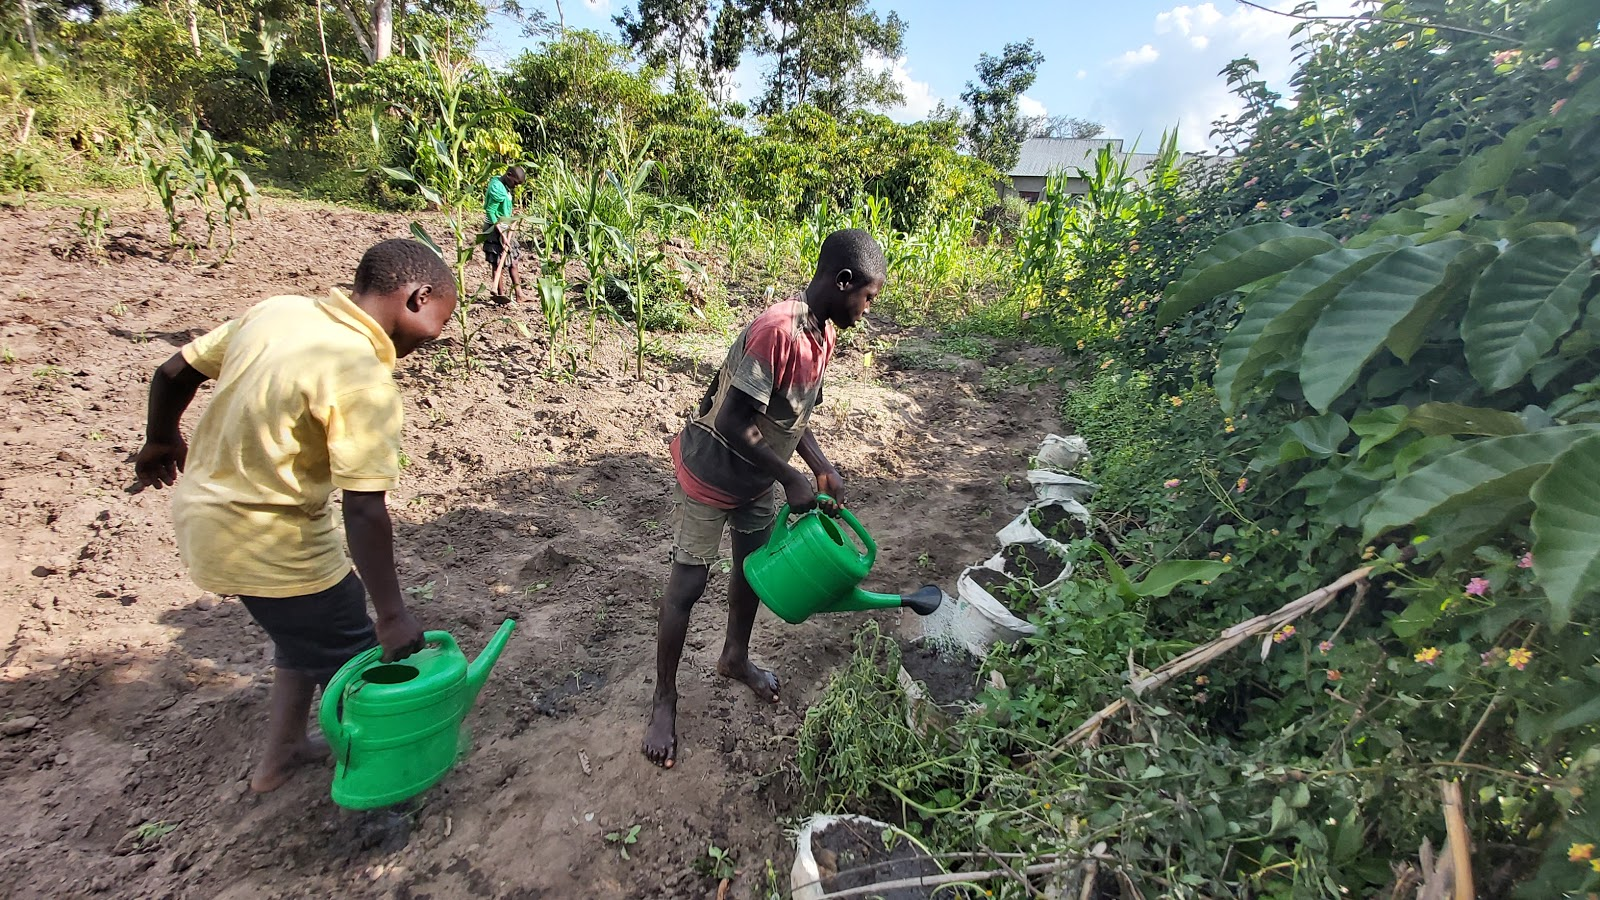 Part Two: Water and Permaculture in Uganda